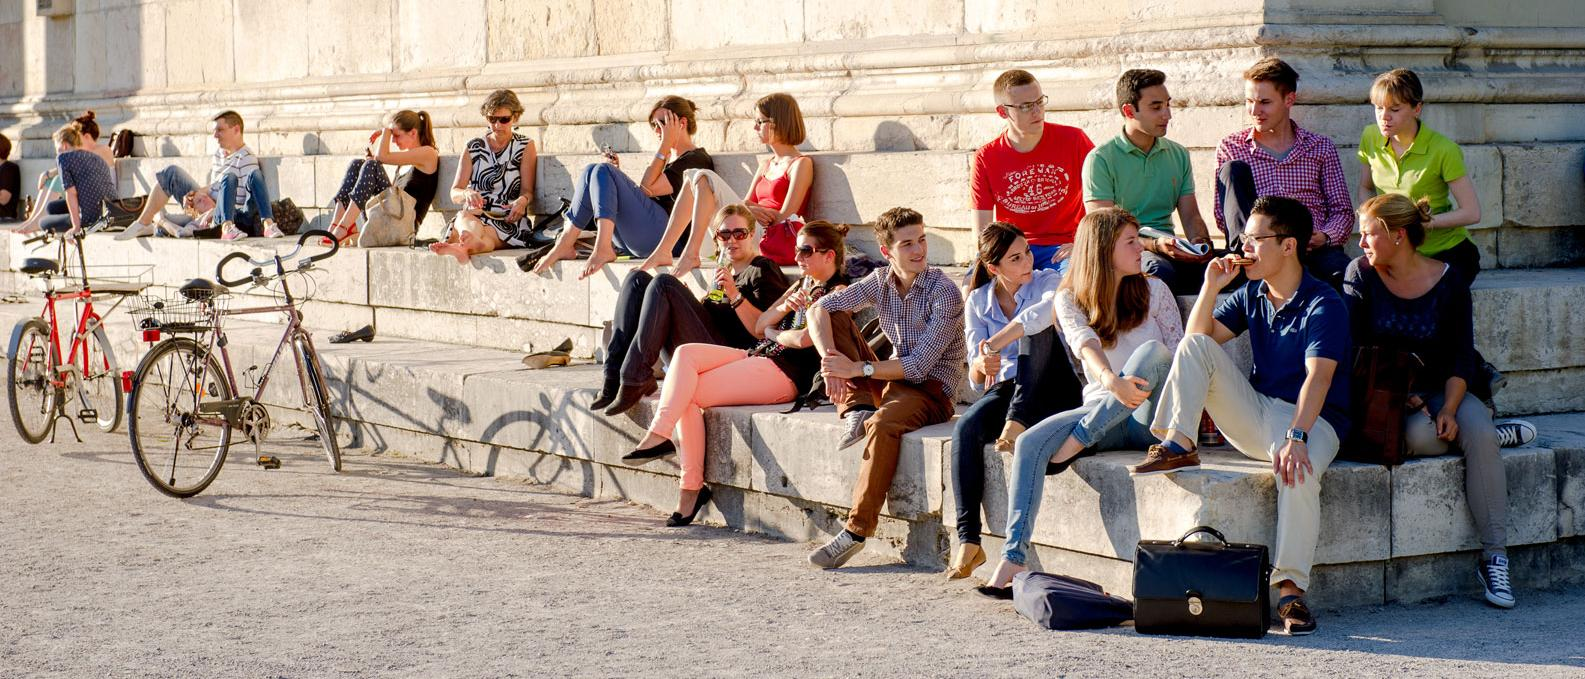 Students of the Technical University of Munich (TUM) are sitting on the steps outside the Glyptothek museum on the Munich Königpslatz square.